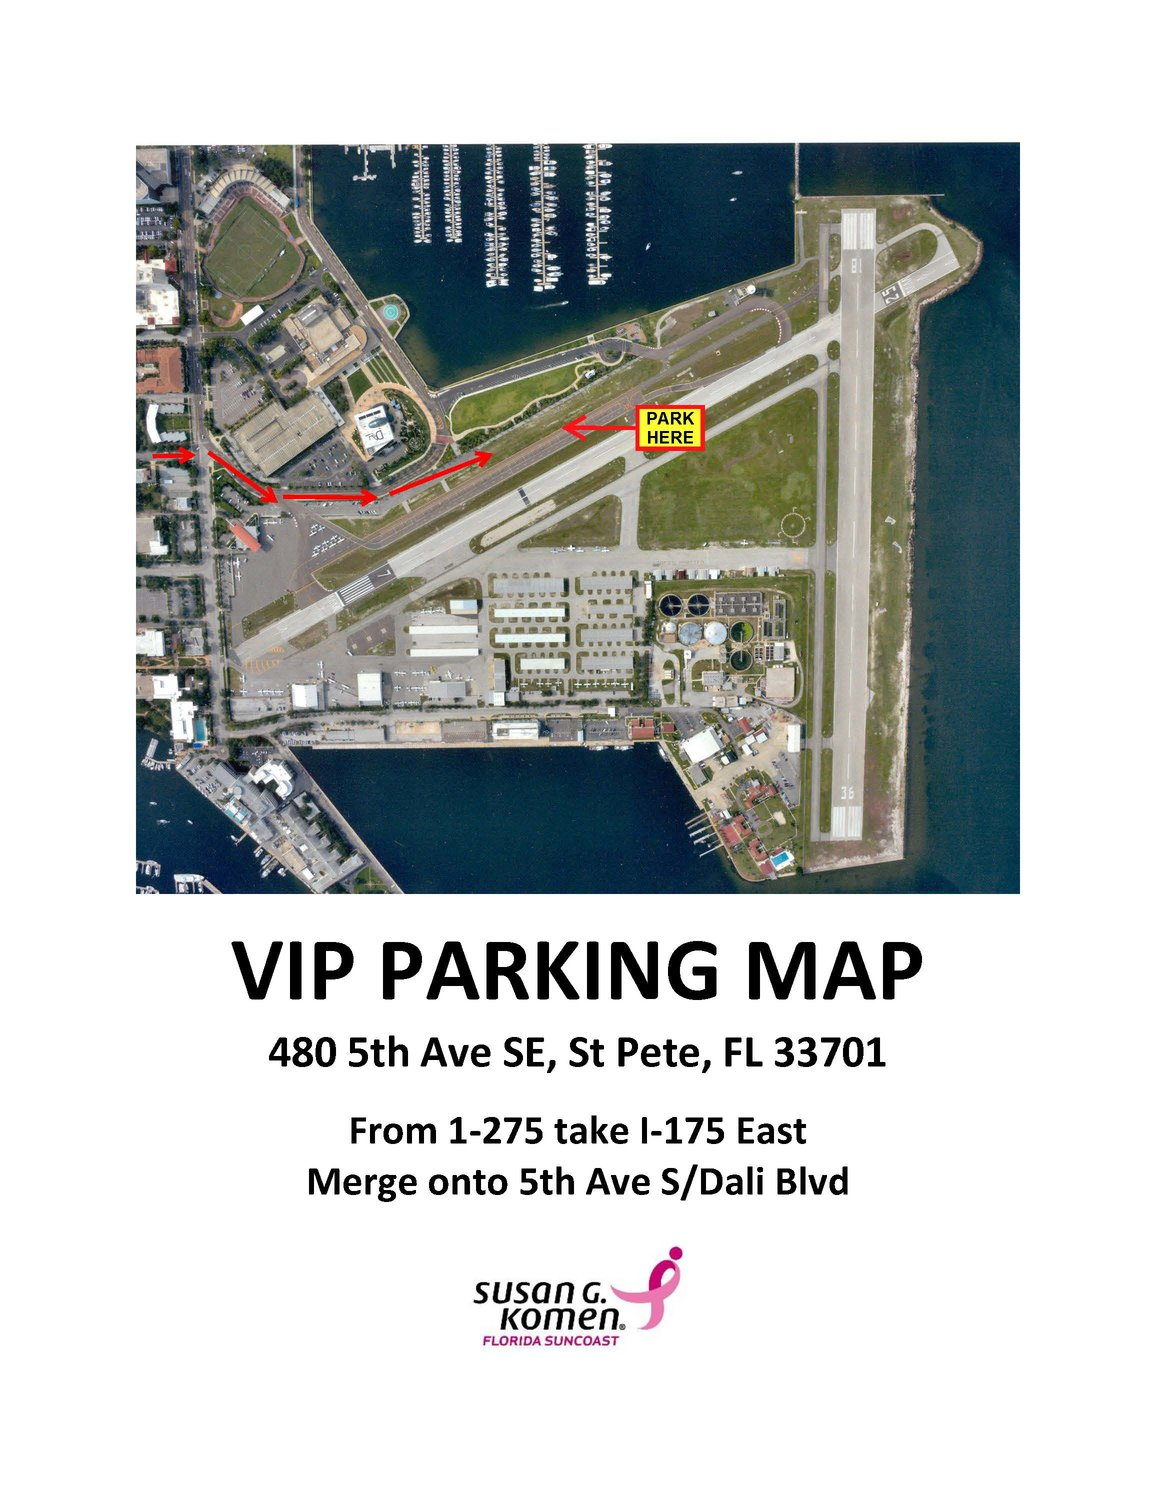 VIP parking map resized.jpg